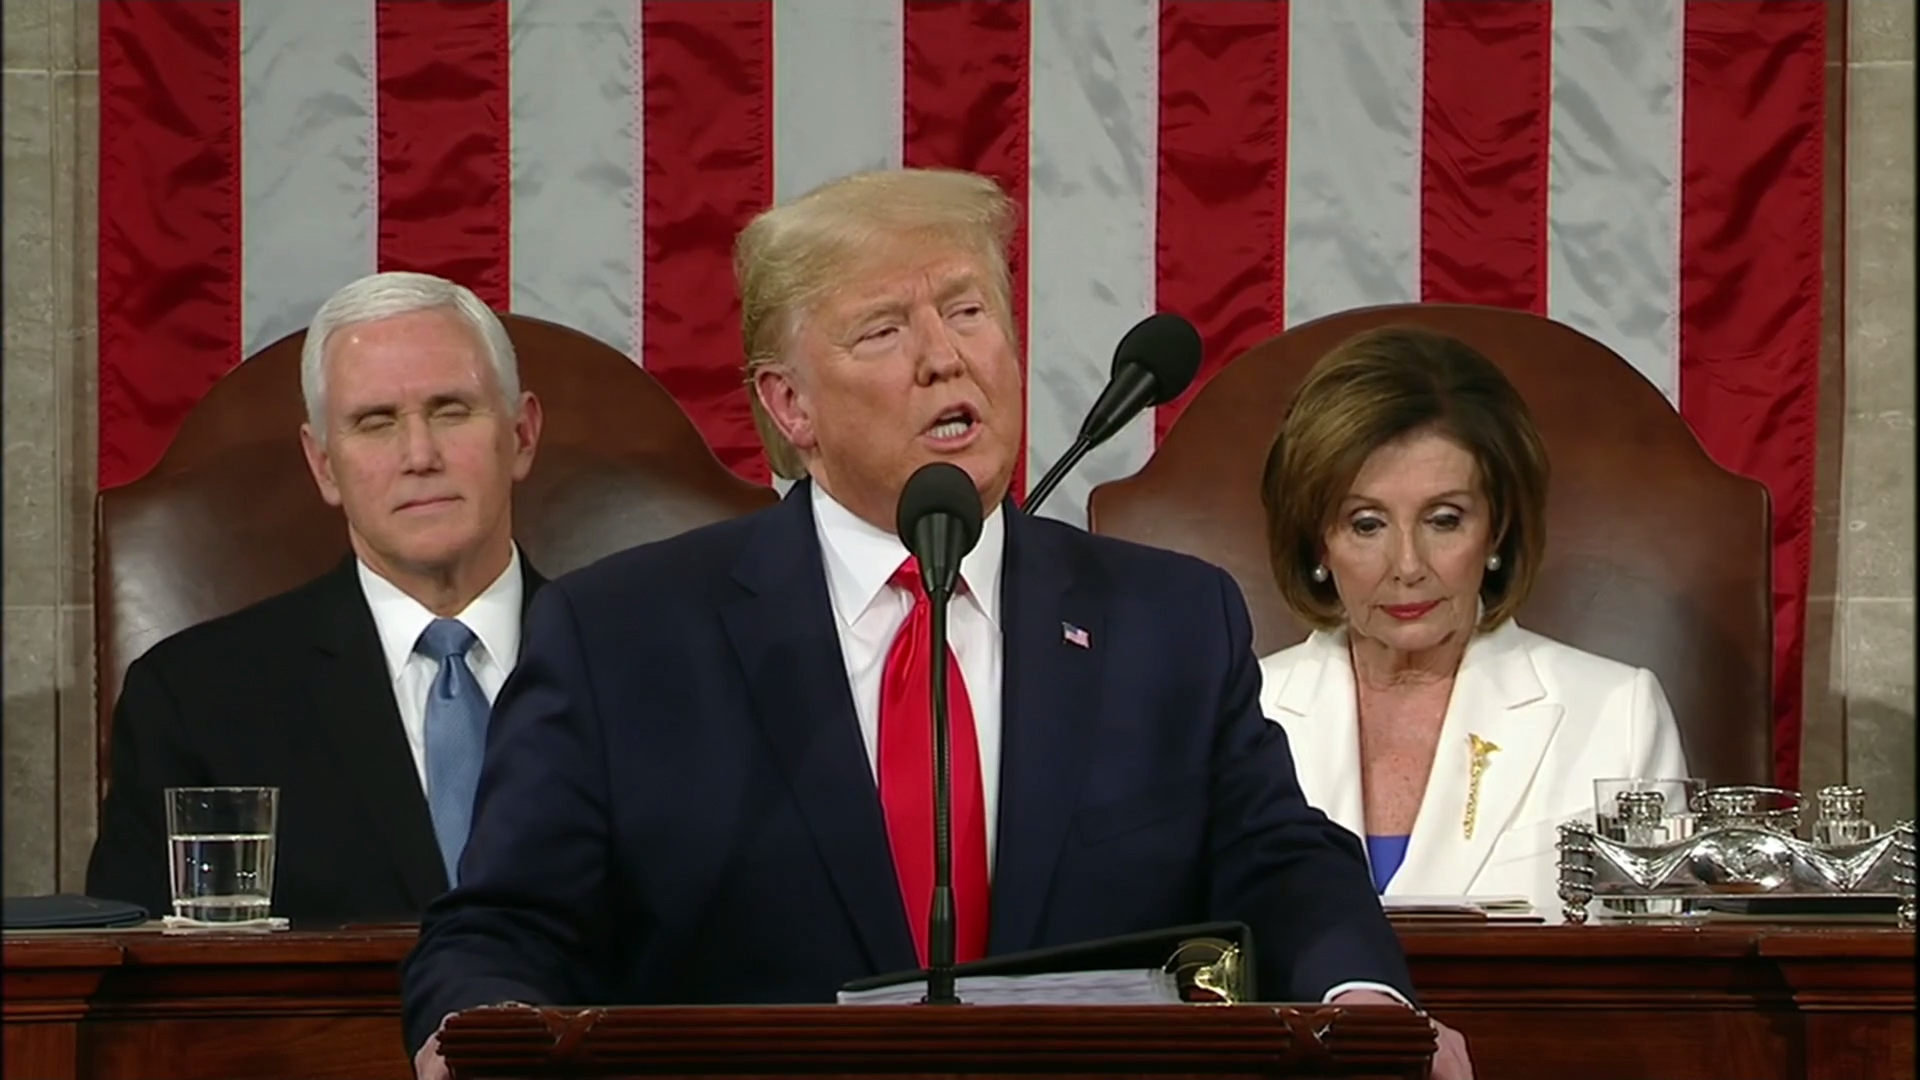 Ux9hJDgS5Gg image 1920x1080 - As America awaits impeachment verdict Trump gives State of the Union address – Channel 4 News